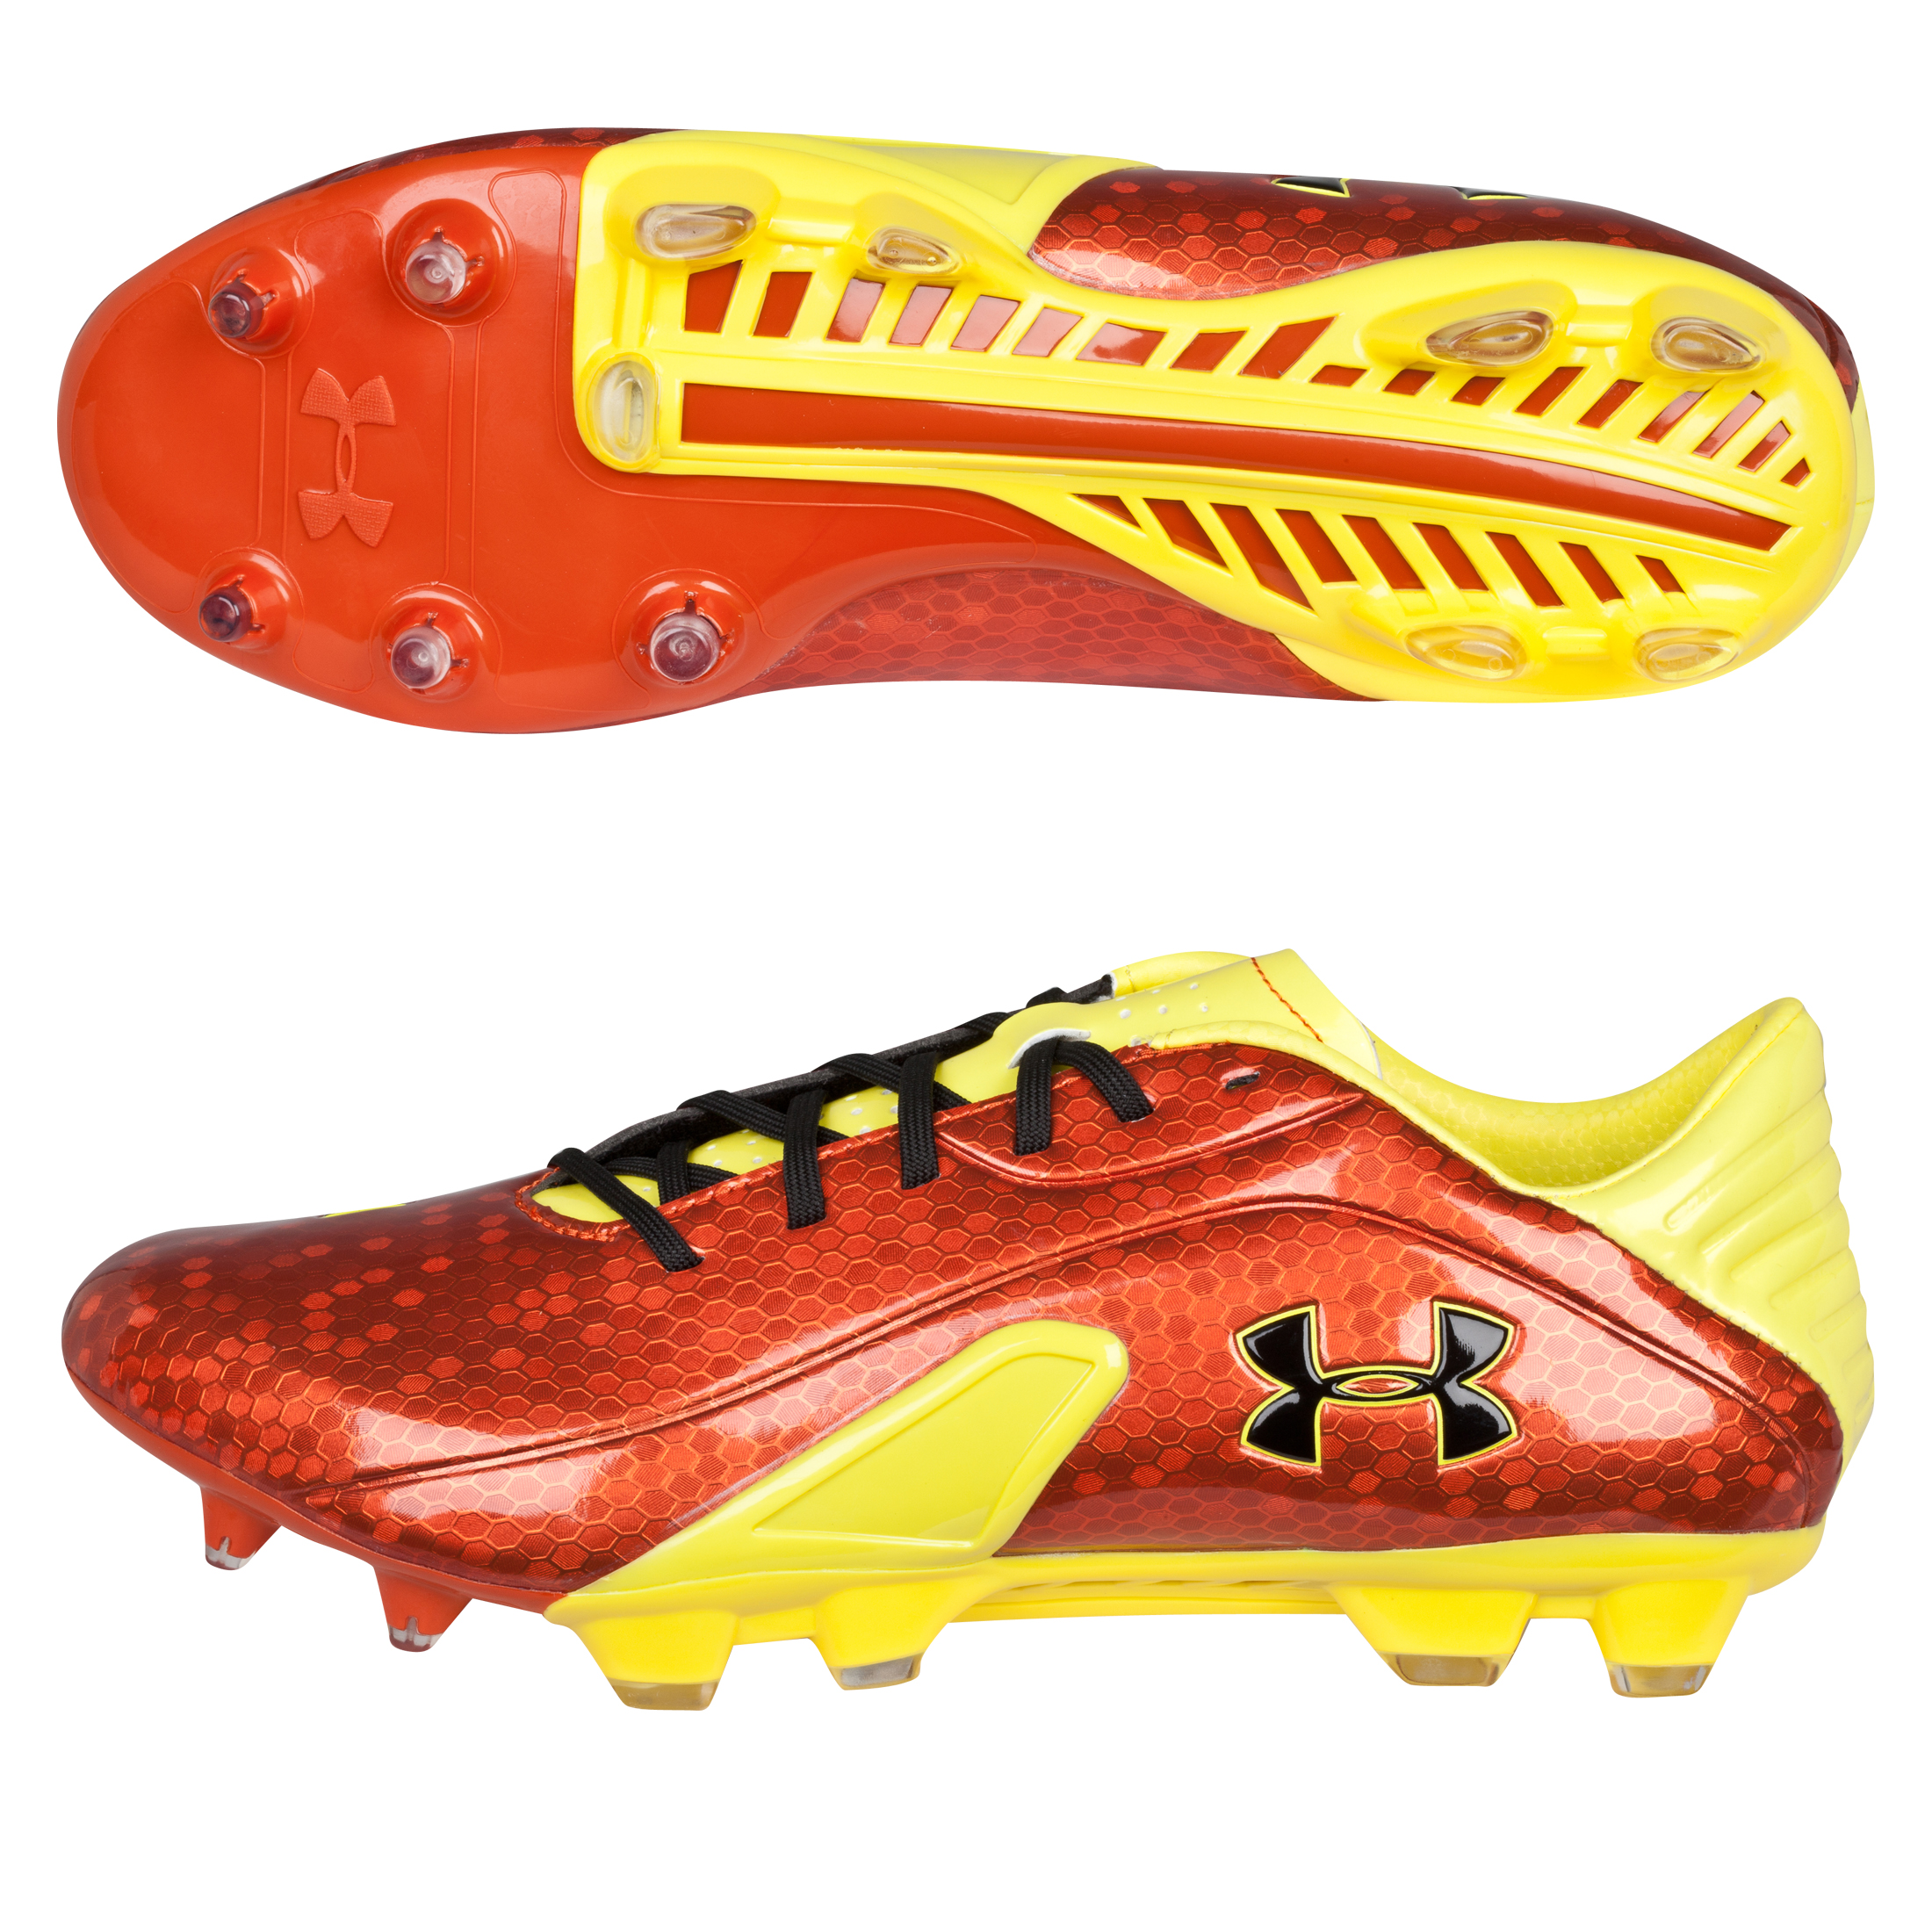 Under Armour Spine Blur FG Vivid/Sun Bleached/Black